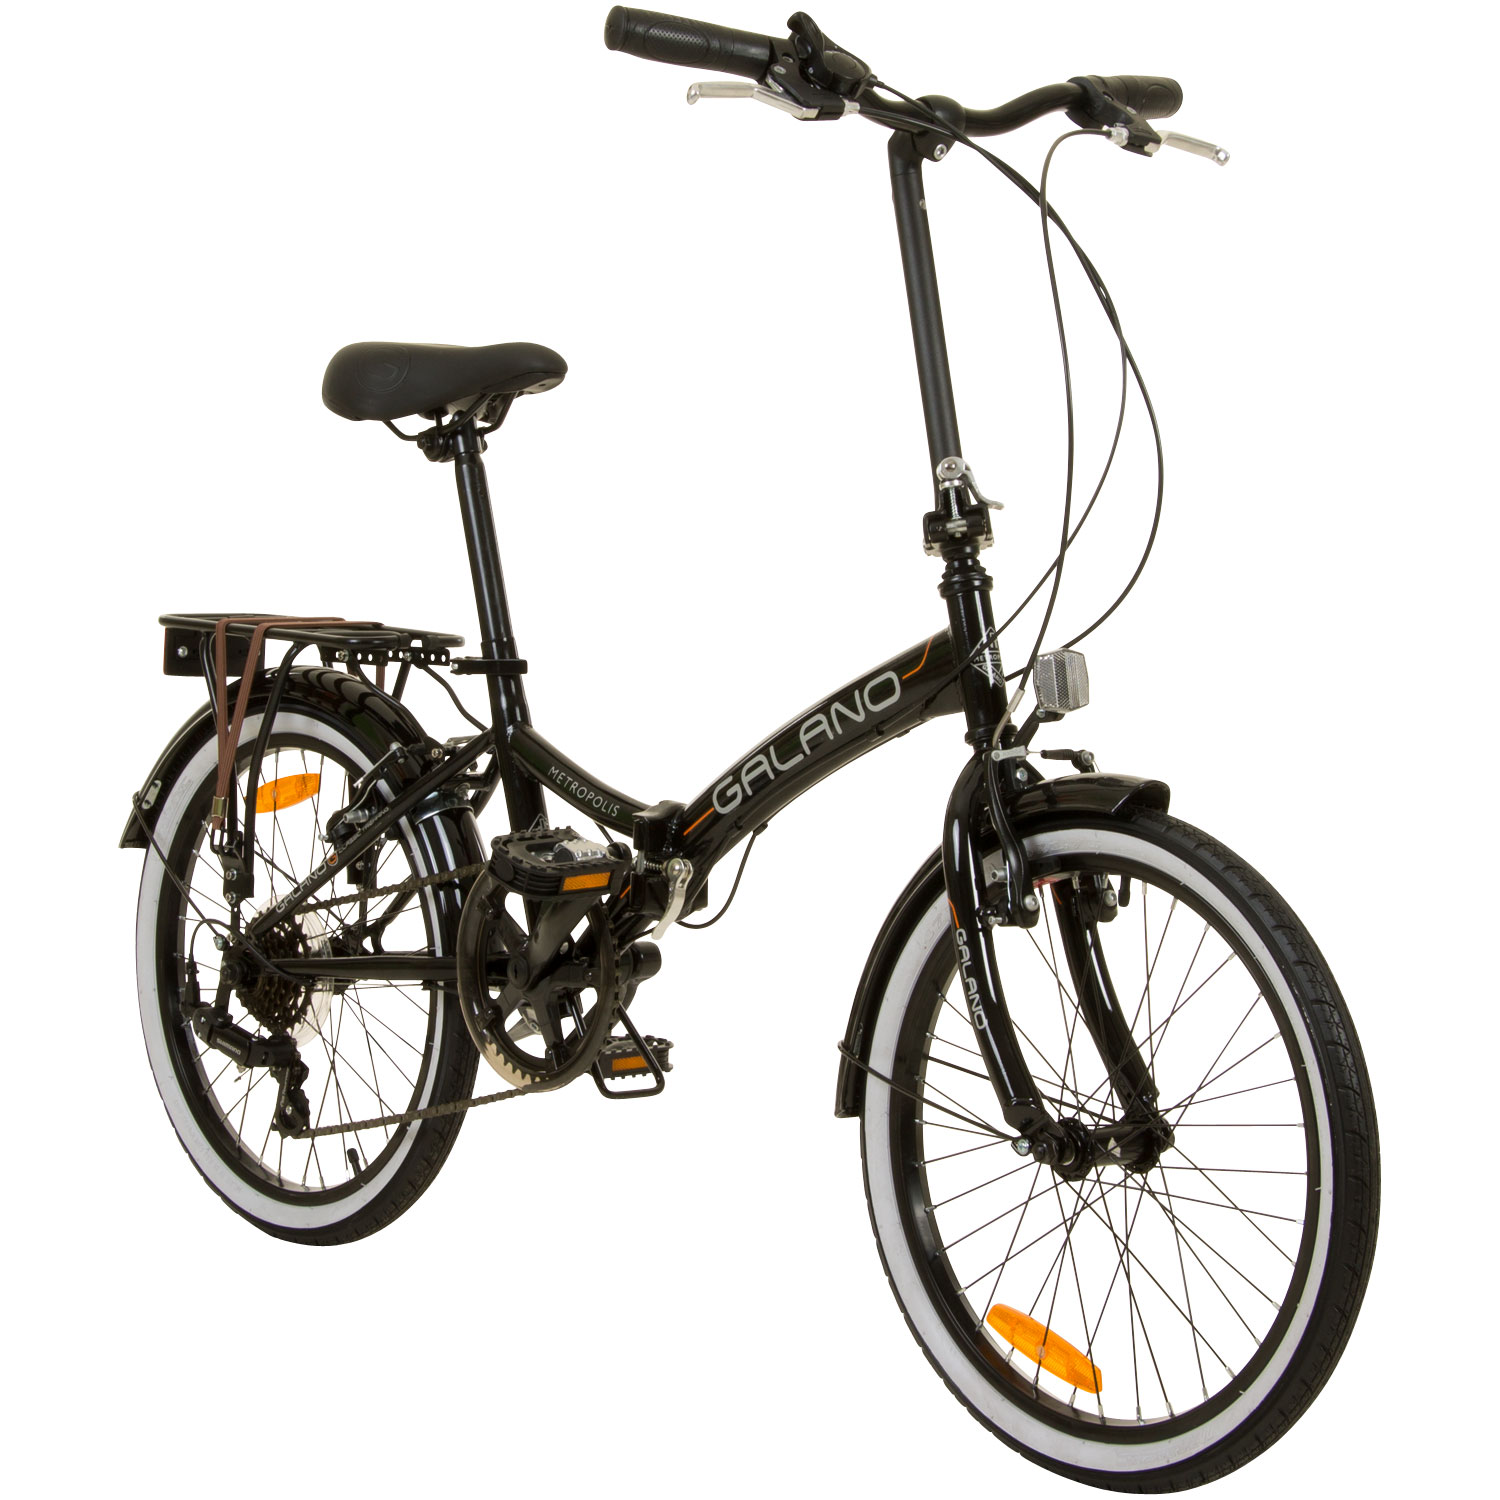 klapprad 20 zoll faltrad city bike galano metropolis. Black Bedroom Furniture Sets. Home Design Ideas